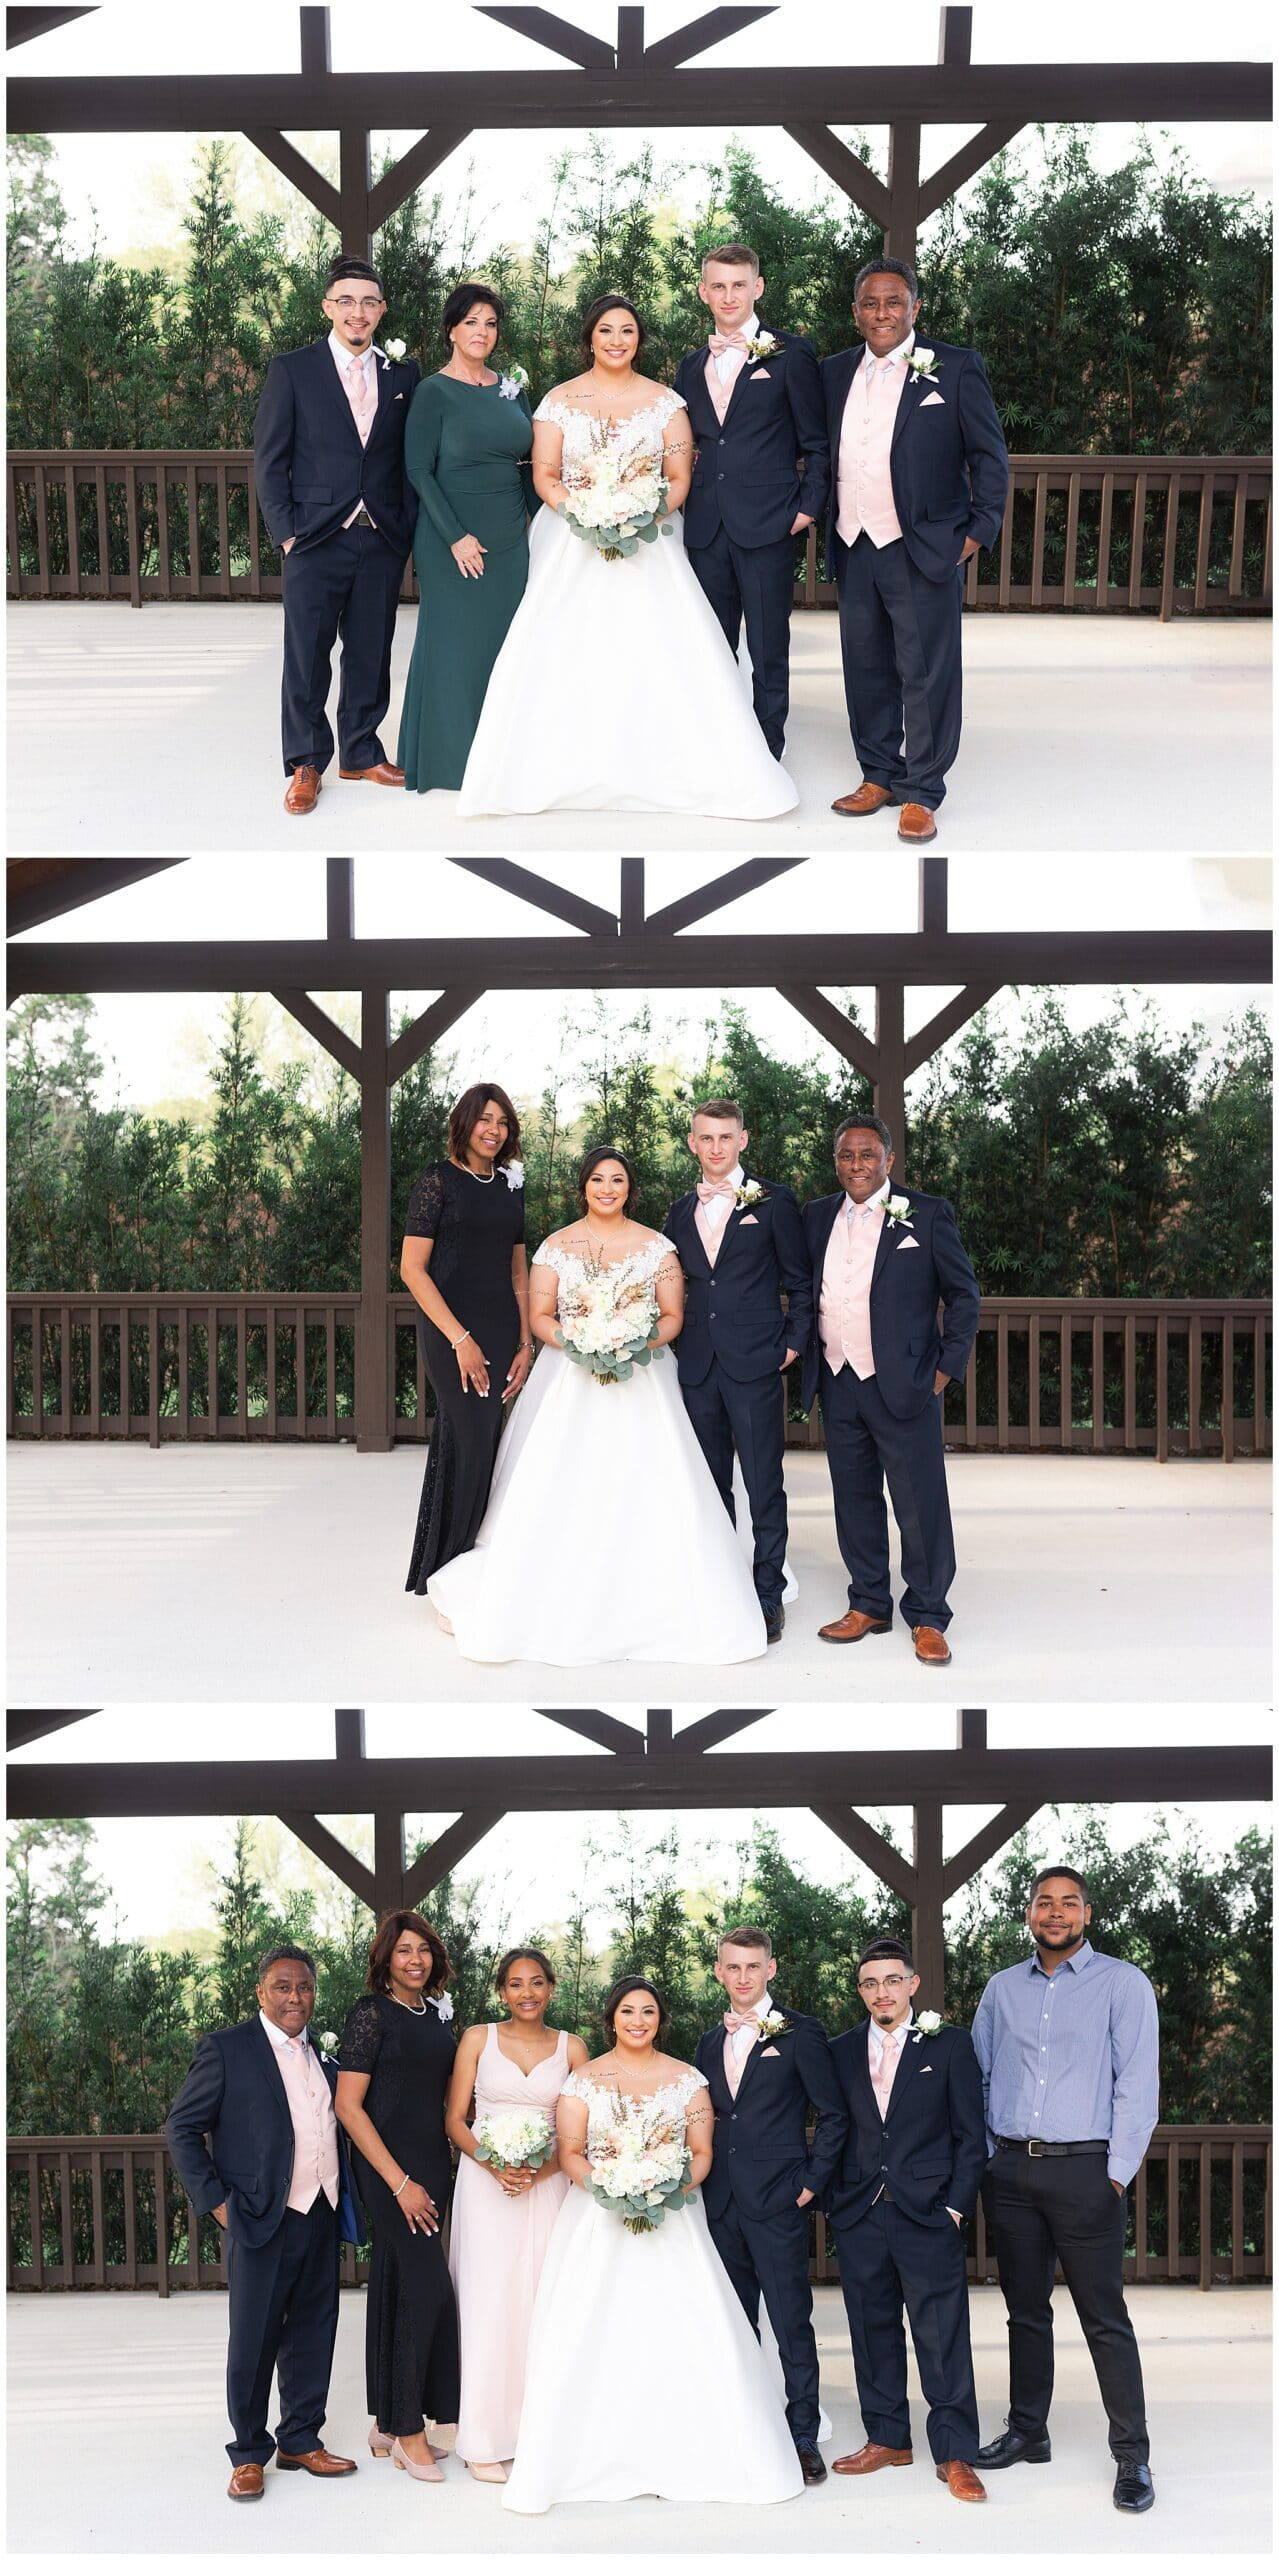 family portraits at Bridal Oaks in Cypress Texas by Houston wedding photographer Swish and Click Photography